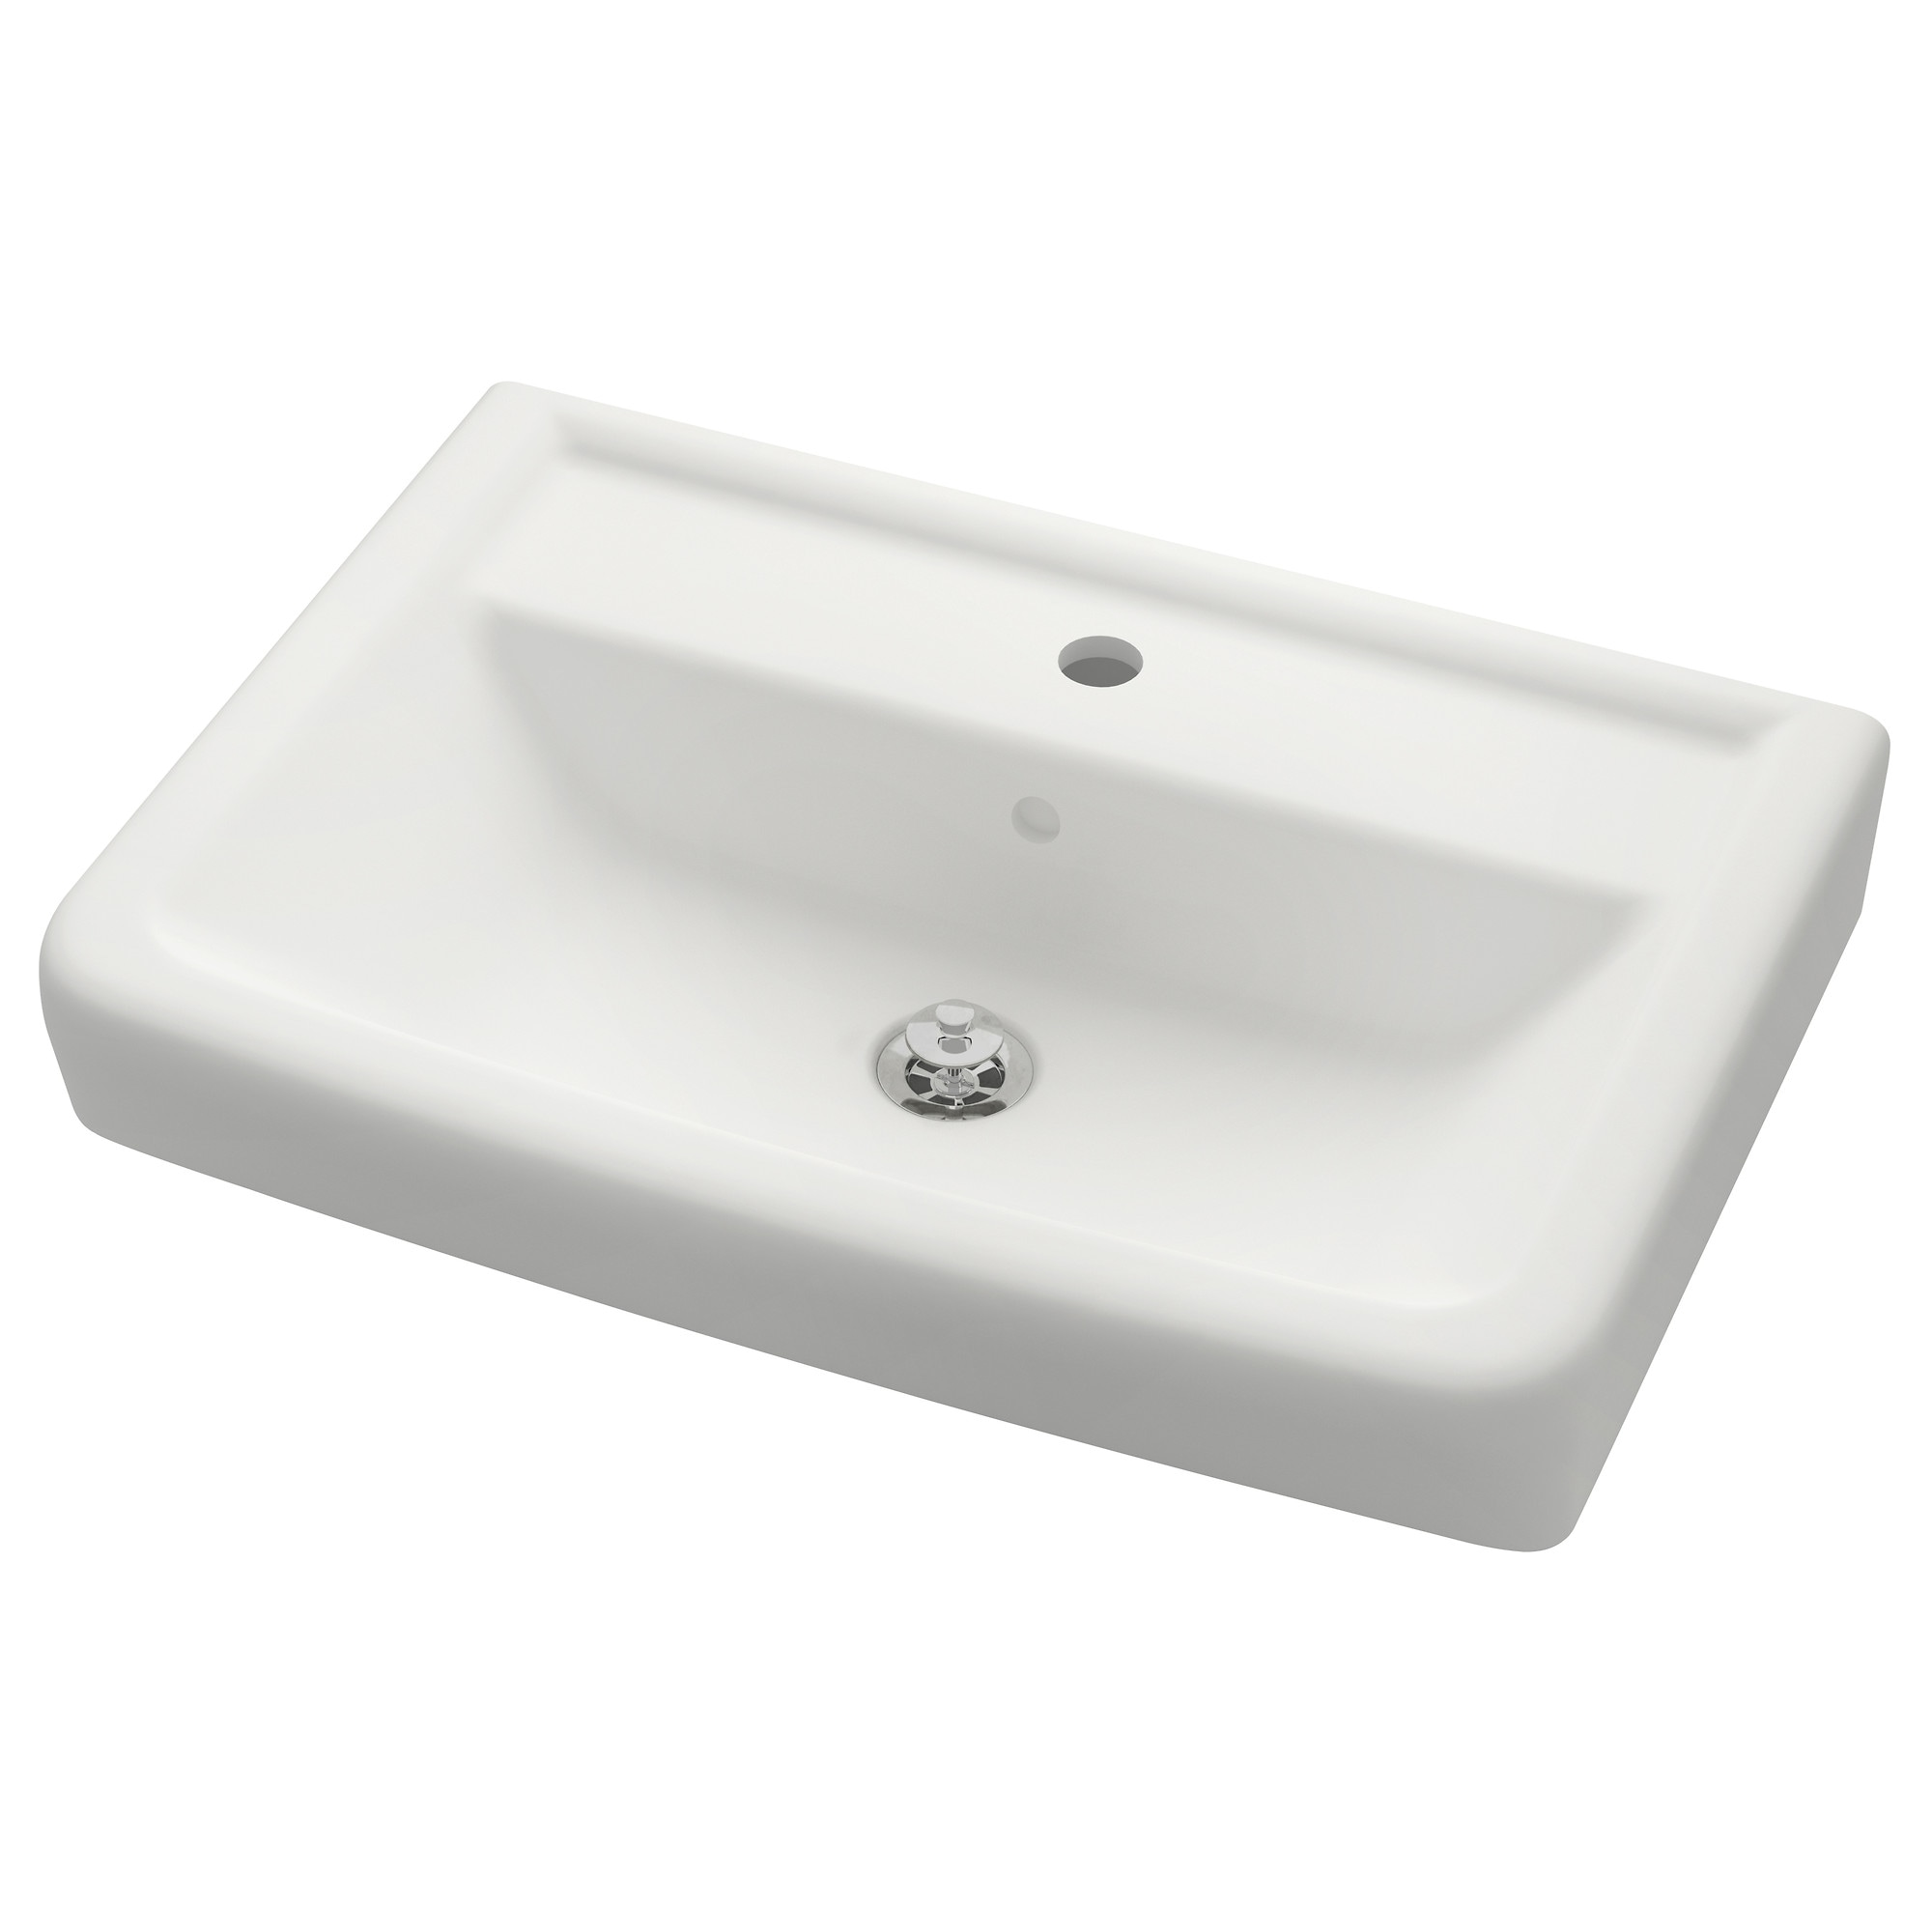 Corner Sink Home Depot : Corner Bathroom Sink Vanity Home Depot ~ Bathroom Sinks - IKEA